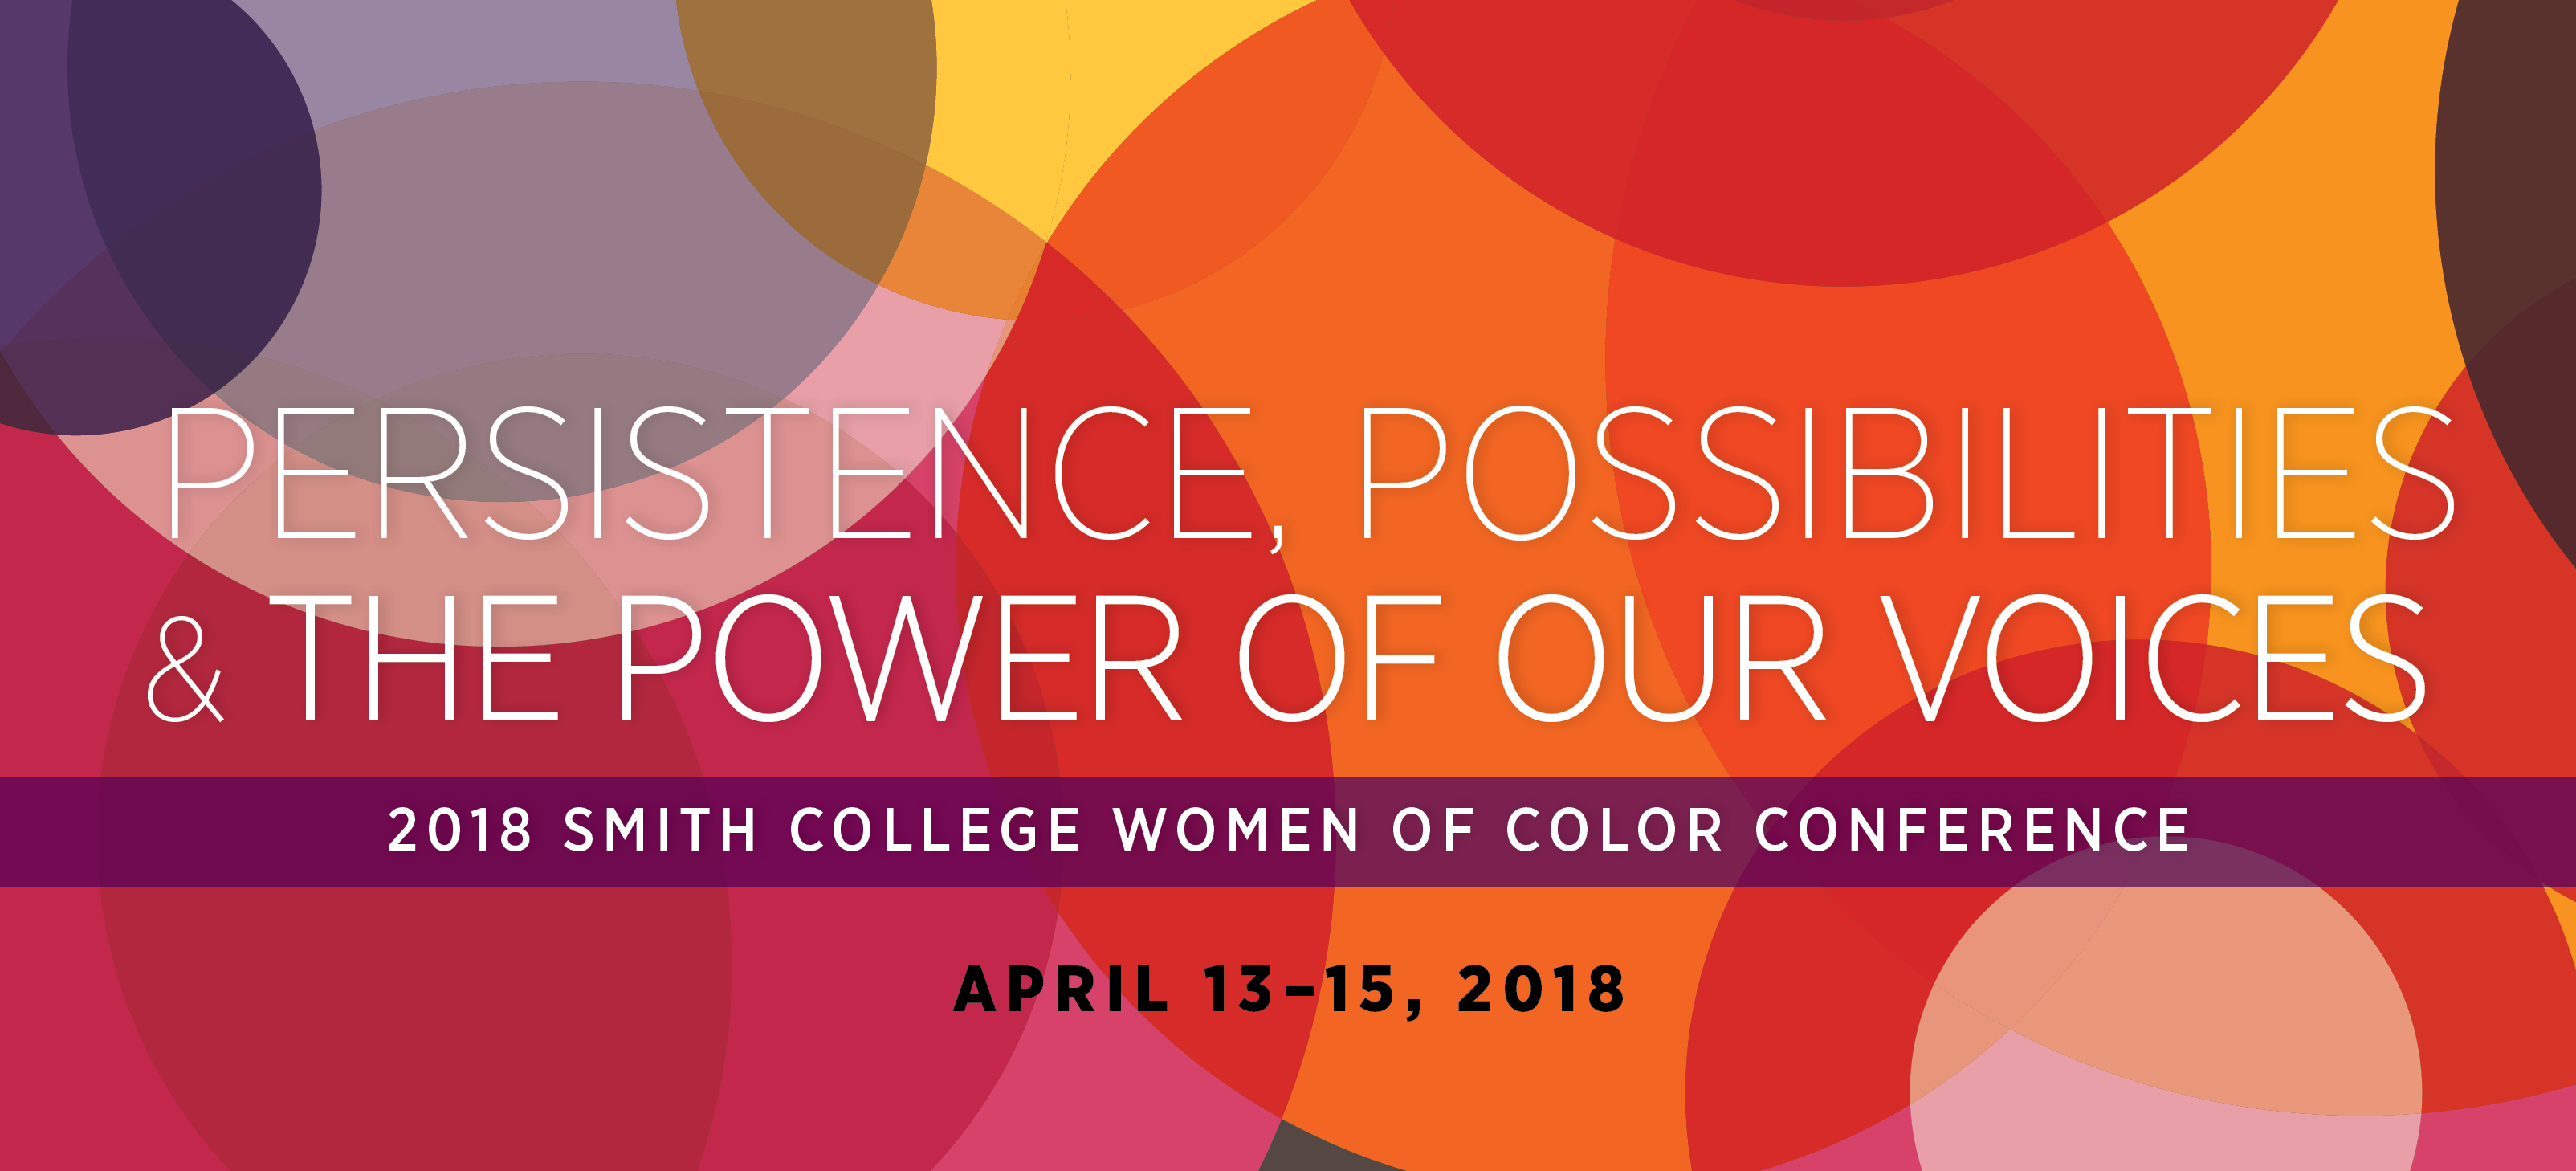 2018 Smith College Women of Color Conference — April 13-15, 2018